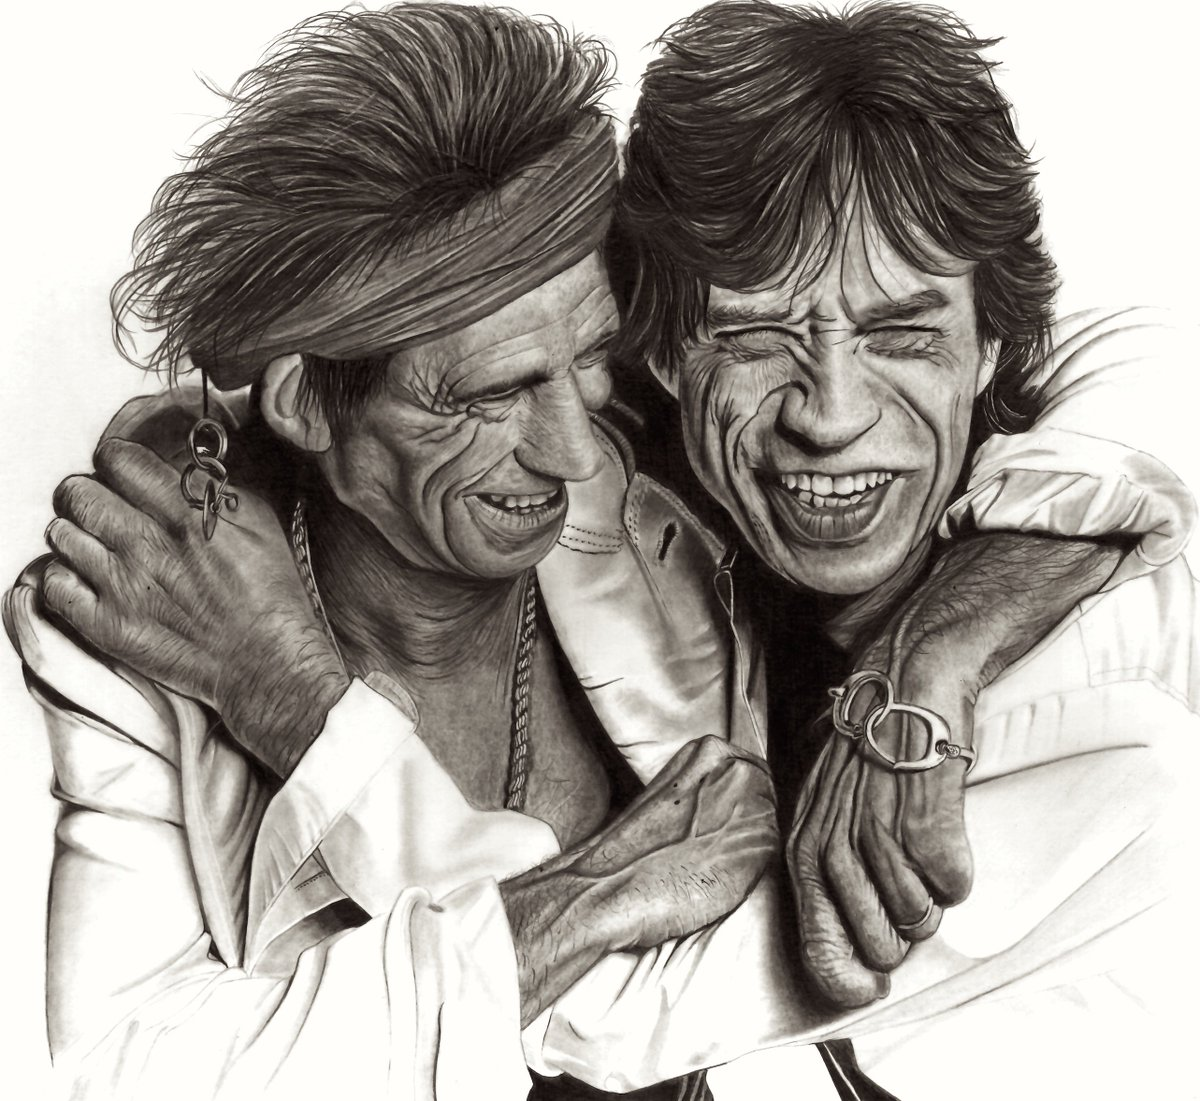 My Latest #Pencildrawing of @MickJagger &amp; #Keithrichards from the @rollingstones drawn with @fabercastell #Pencils  http://www. stowe.gallery  &nbsp;  <br>http://pic.twitter.com/HmGzeJEGb9